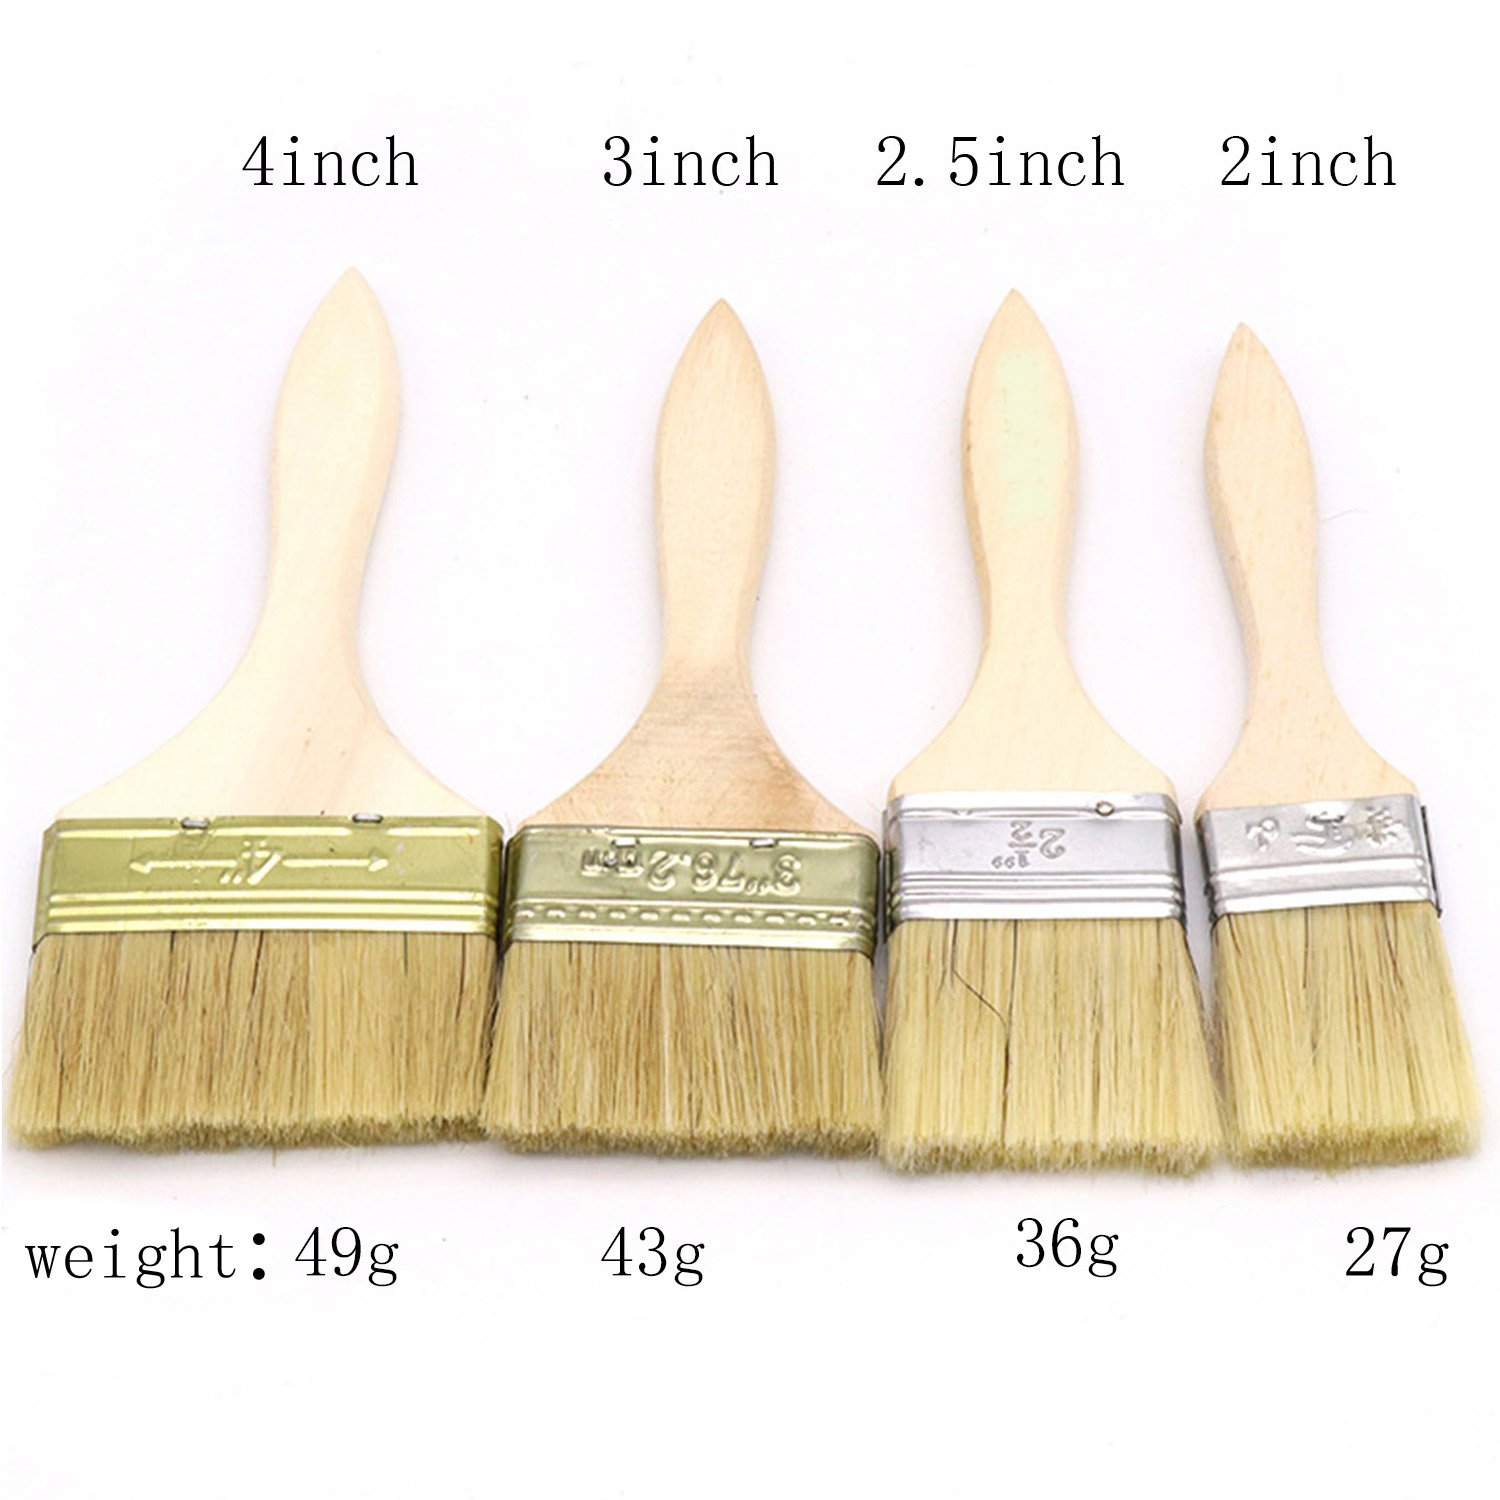 CONRUSER Paint Brushes Pure Bristle with Duty Wooden Handle, (4 Pack) 2 inch, 2.5 inch, 3 inch, 4 inch, for Paint, Stains, Varnishes, Glues, and Gesso by CONRUSER